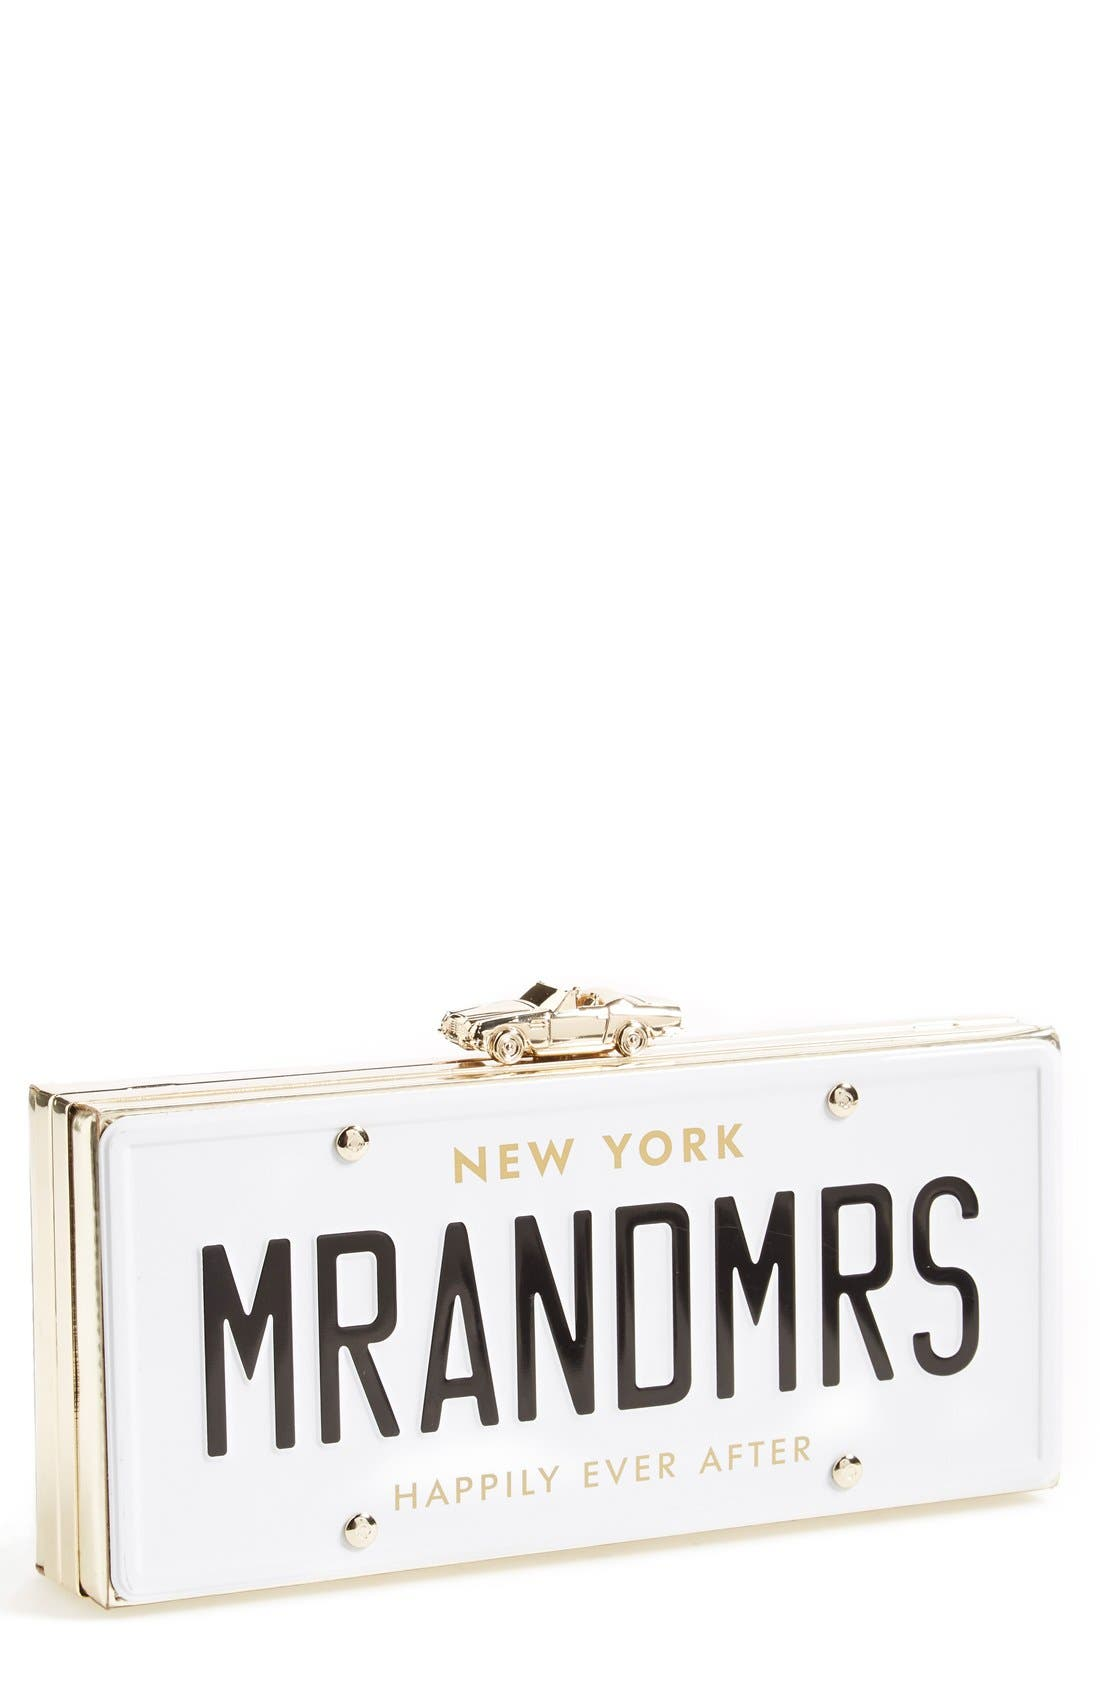 'mr. and mrs. - happily ever after' license plate box clutch,                         Main,                         color, 100